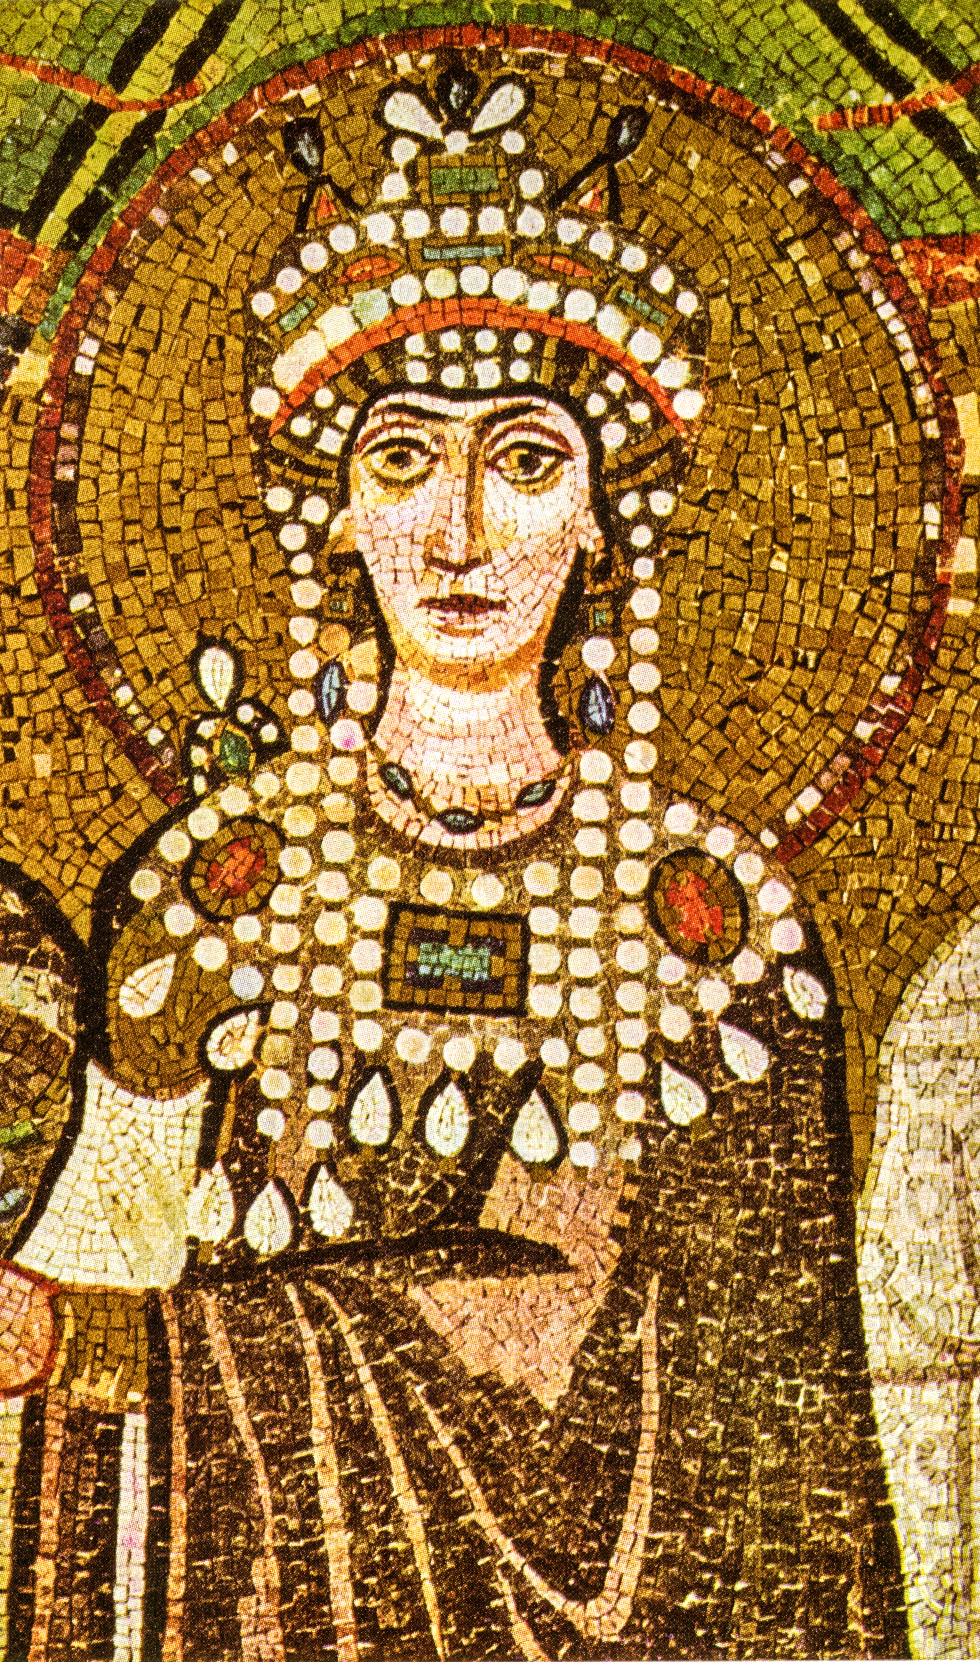 a biography of theodora the wife of justinian i Even more unpopular was empress theodora, justinian's wife, because she was originally a circus performer and came from the lower class of romans.